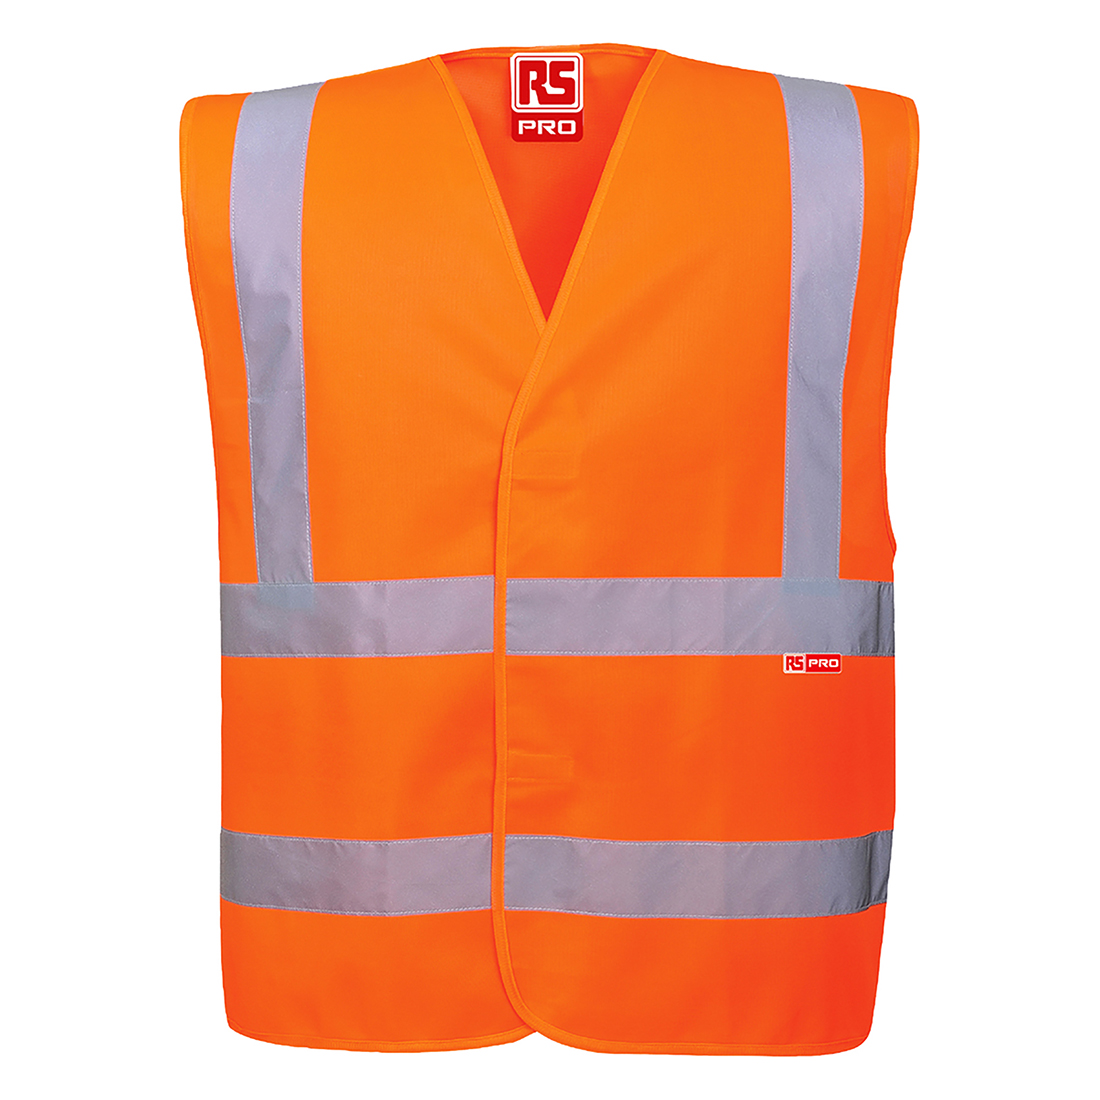 RS PRO Orange Breathable Hi Vis Vest, XXL to XXXL